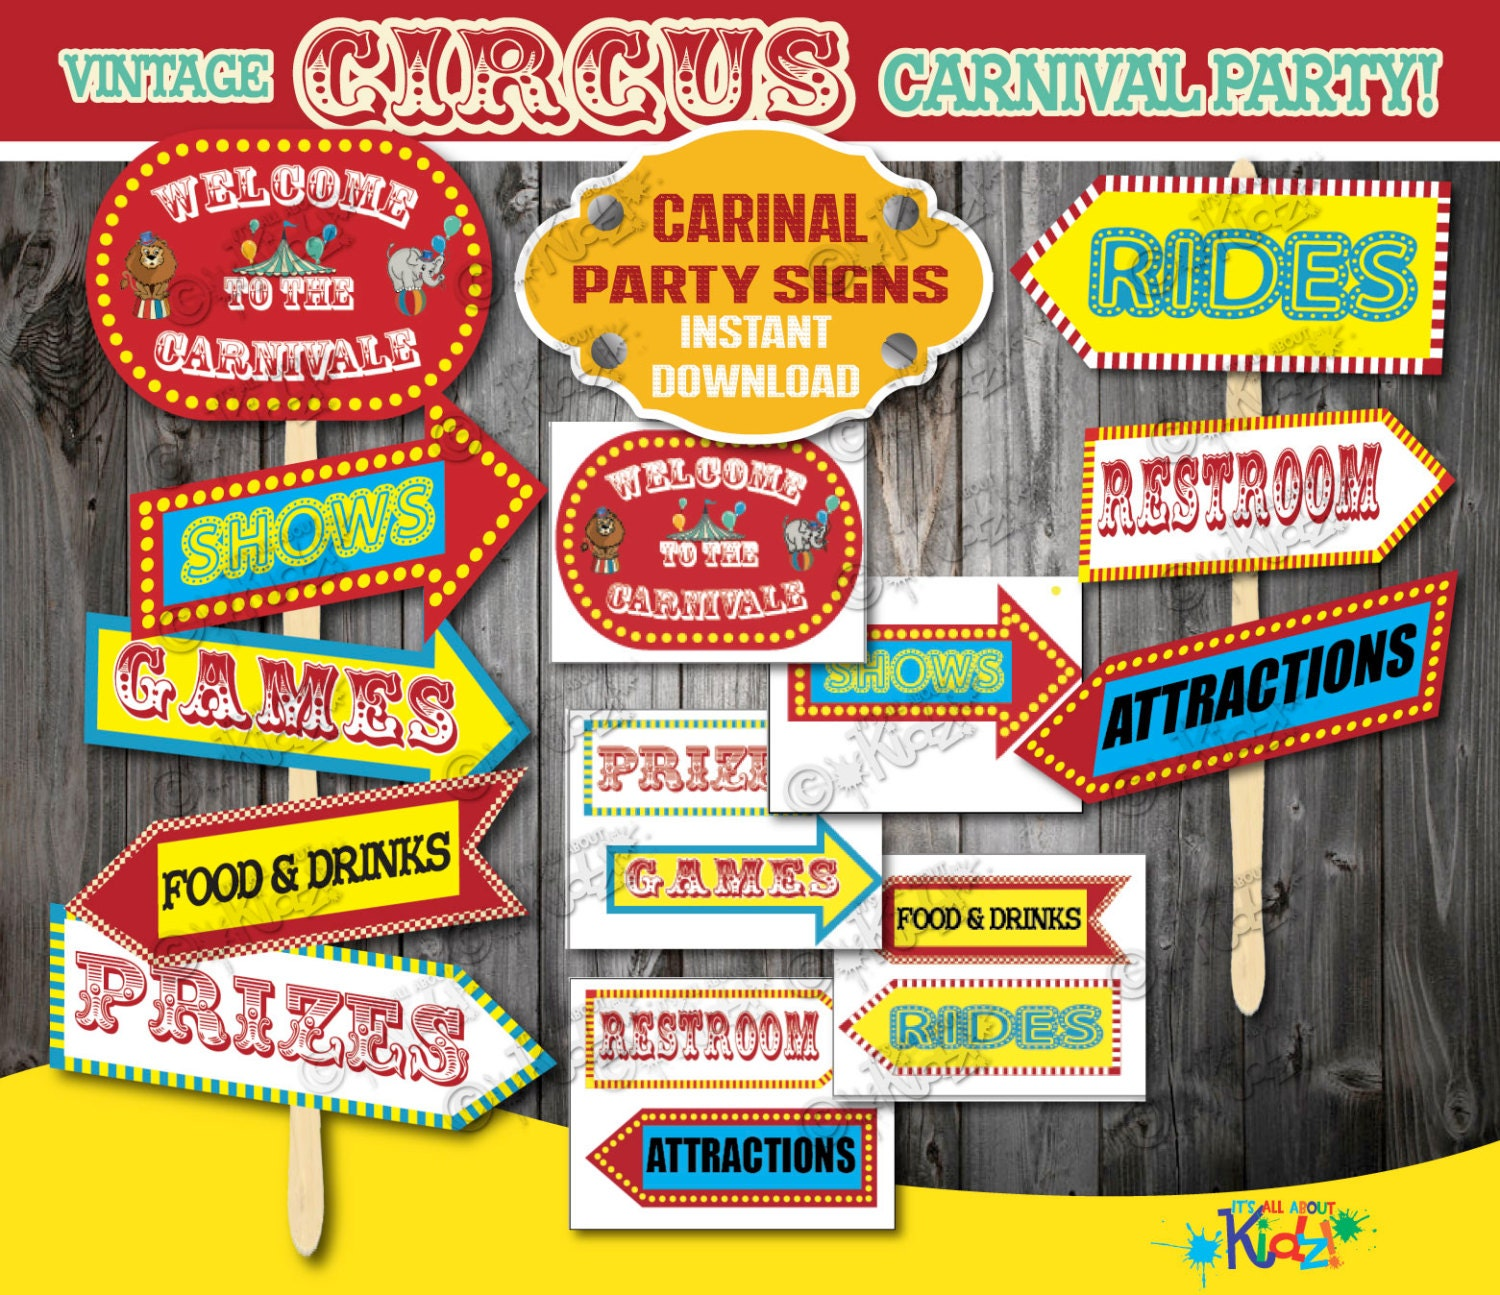 ideas design on carnival decorations amp best circus pinterest decor of party images